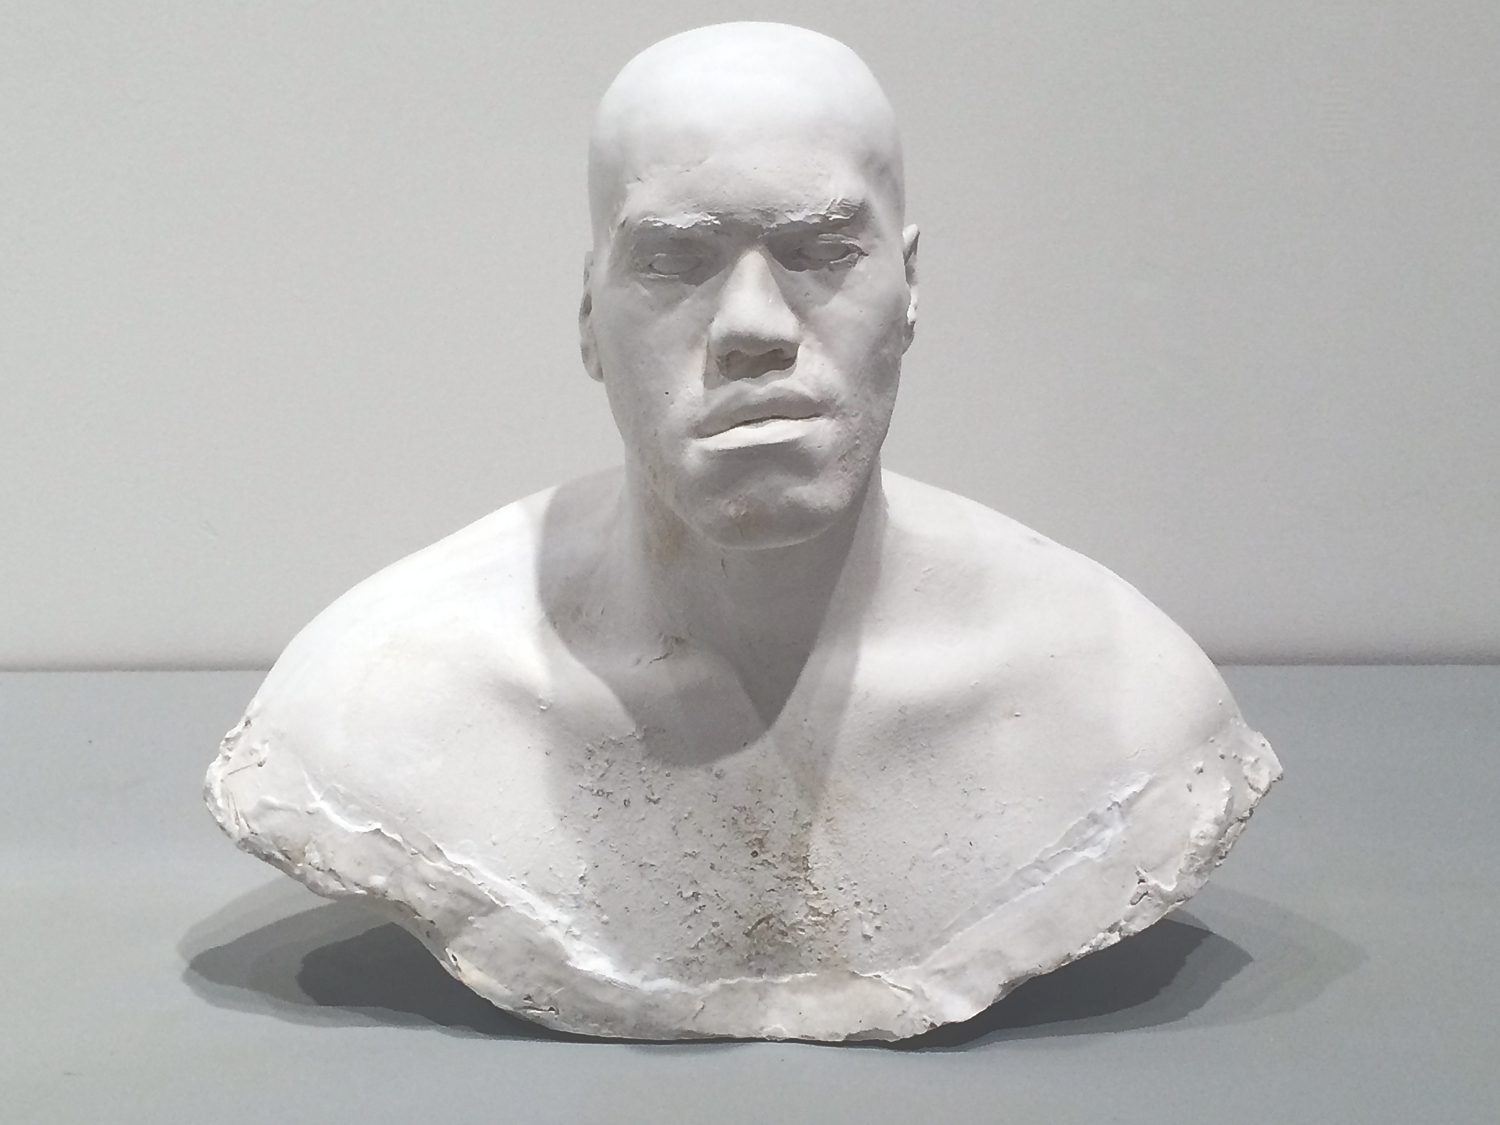 BUST OF AN AMERICAN MAN (EARLY 21ST CENTURY), 2011 - 13, plaster cast, sculpted, wax.